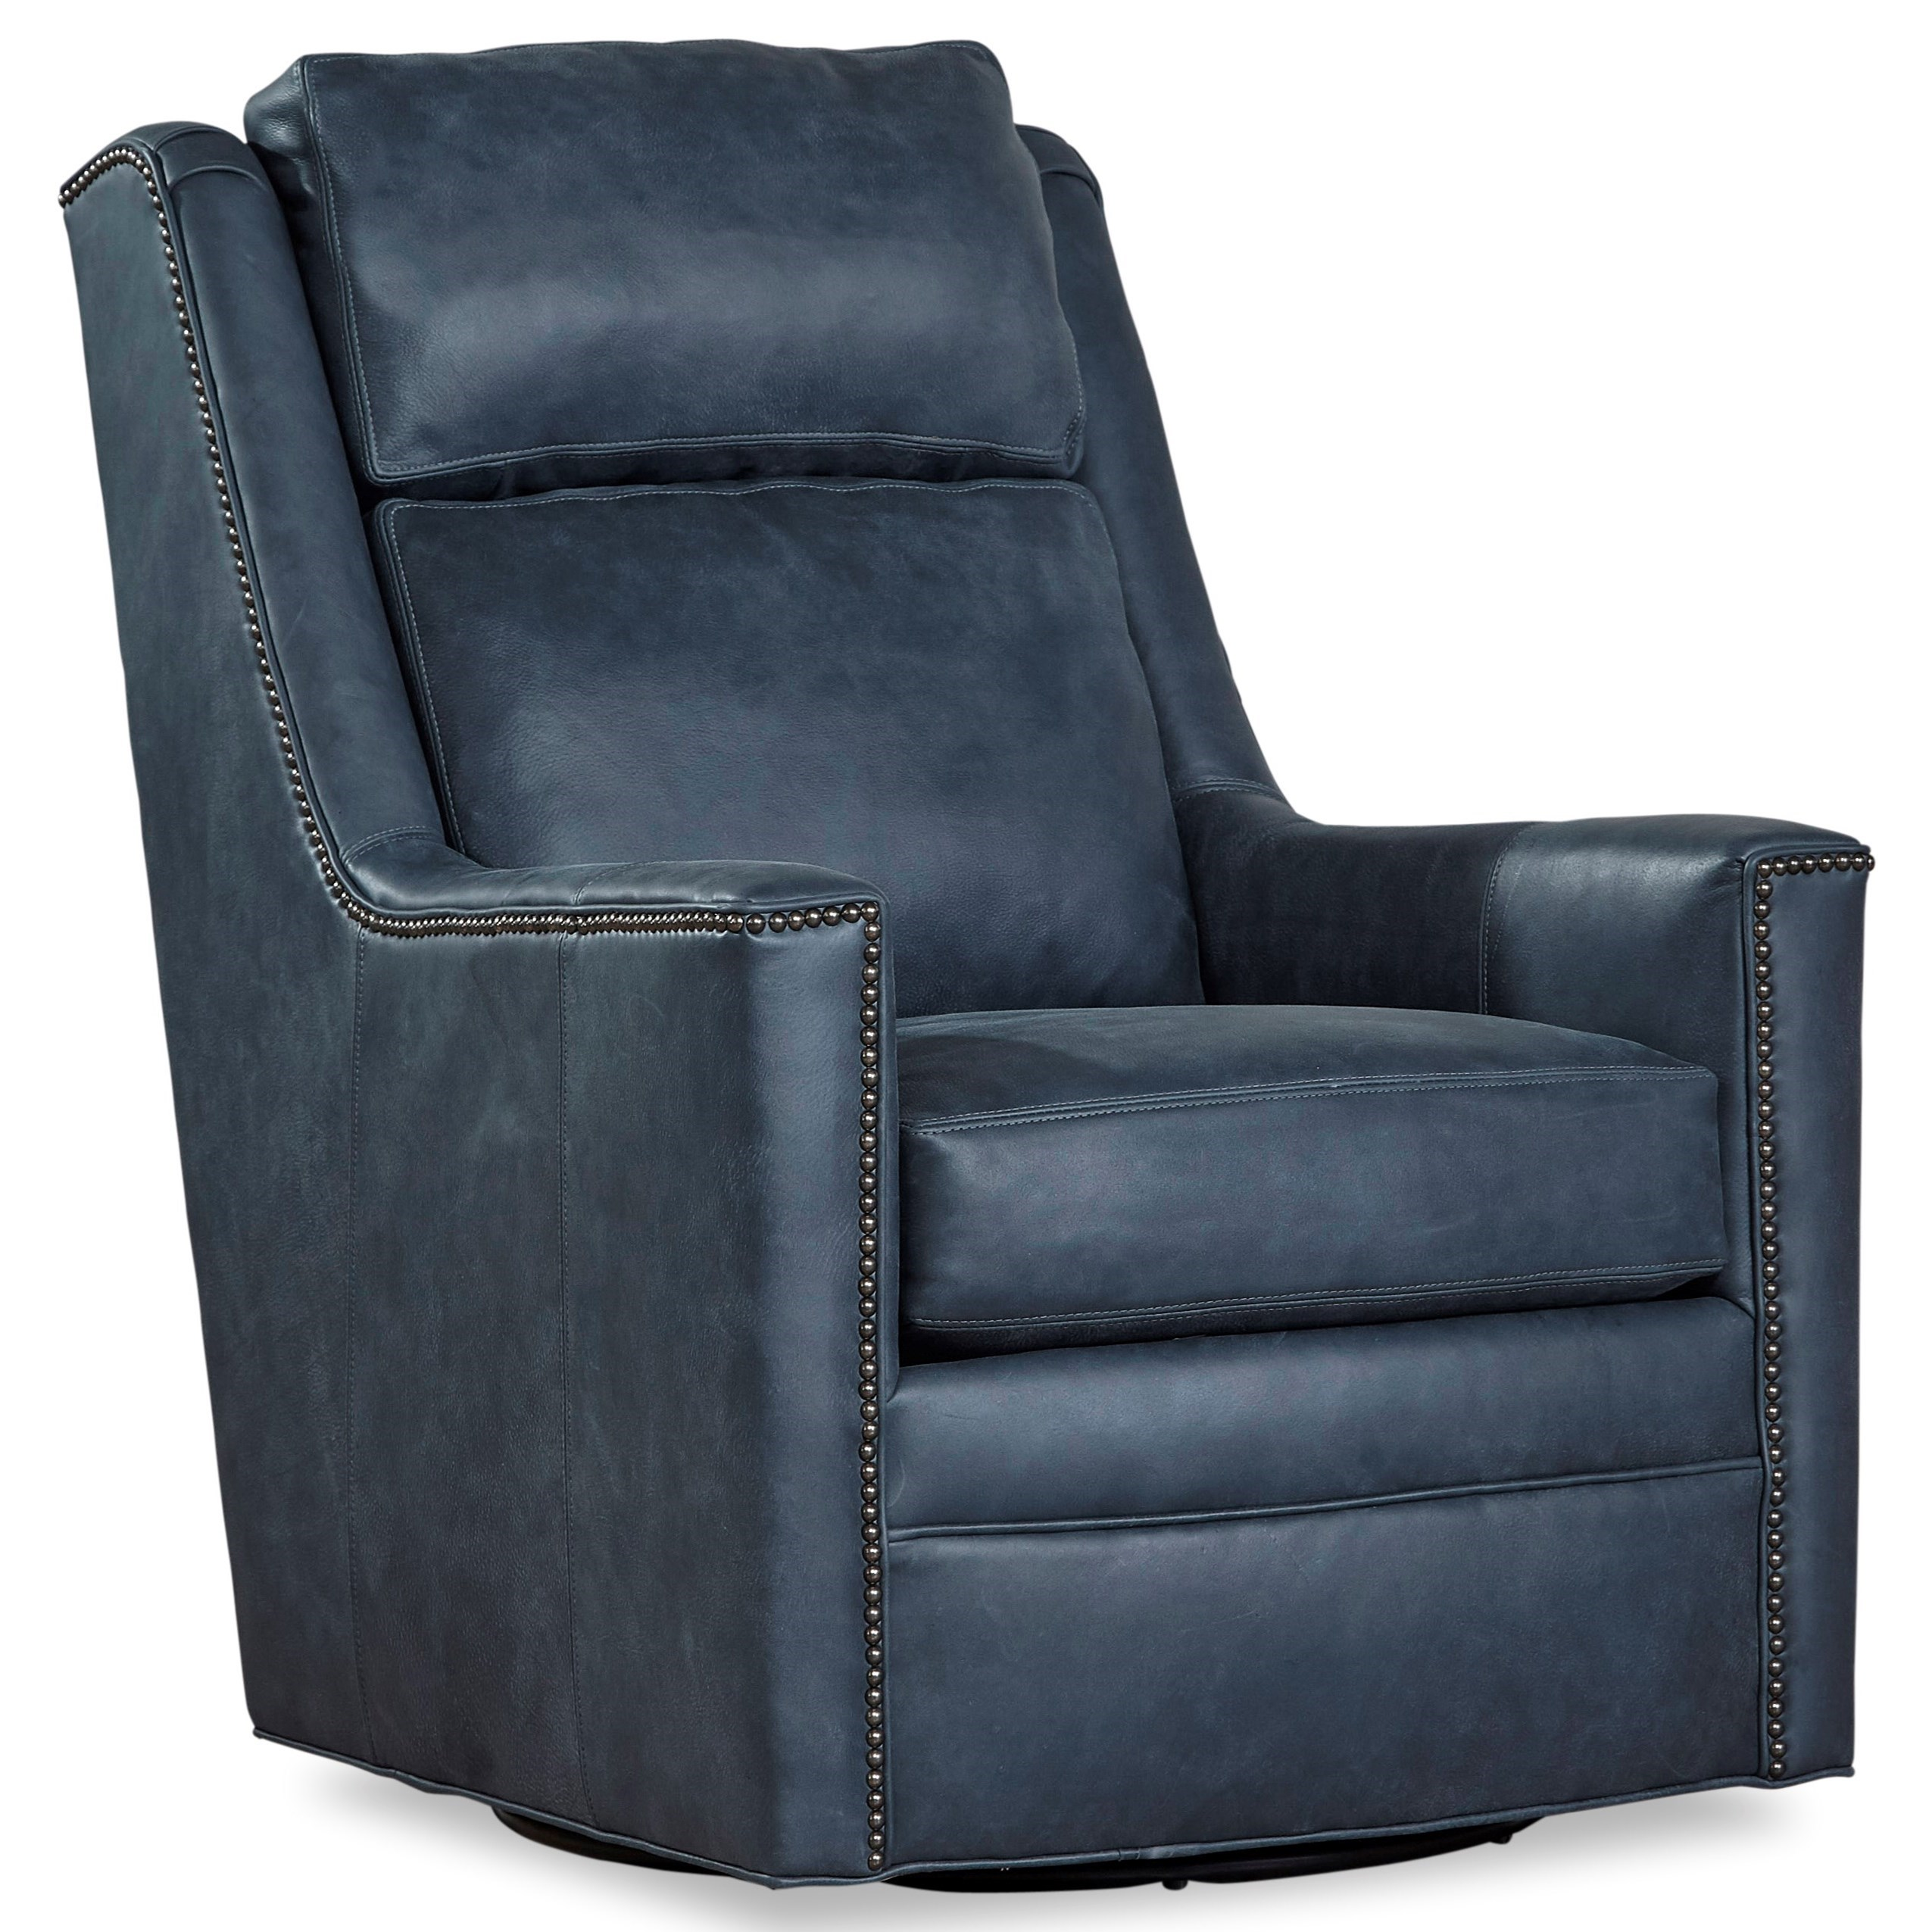 7268 Swivel Chair by Huntington House at Belfort Furniture